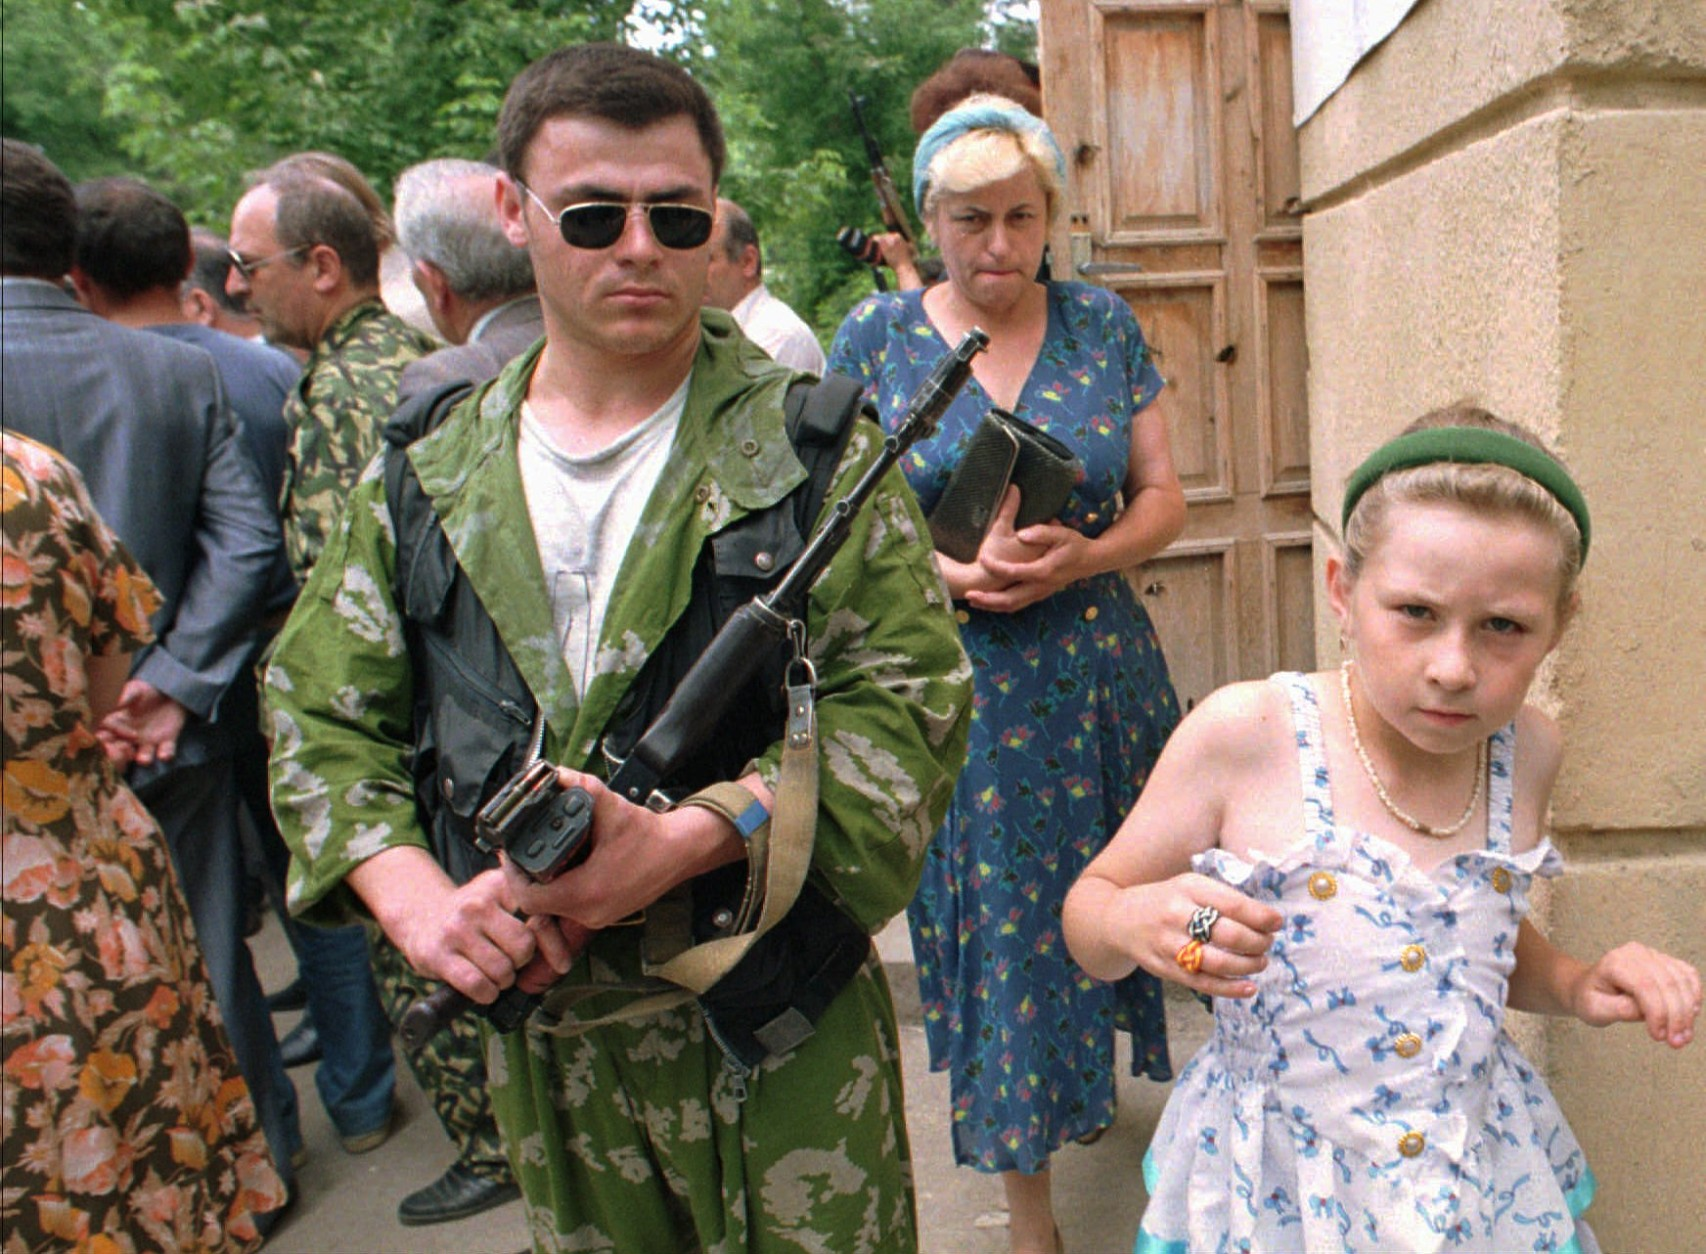 People leave a polling  station in Grozny, capital of war torn Chechnya, under the watchful eye of a Russian soldier, after voting in local and Russian presidential elections, Sunday June 16 1996. Polsters make the presidential election a very close call. (AP Photo/Shakh Aivazov).